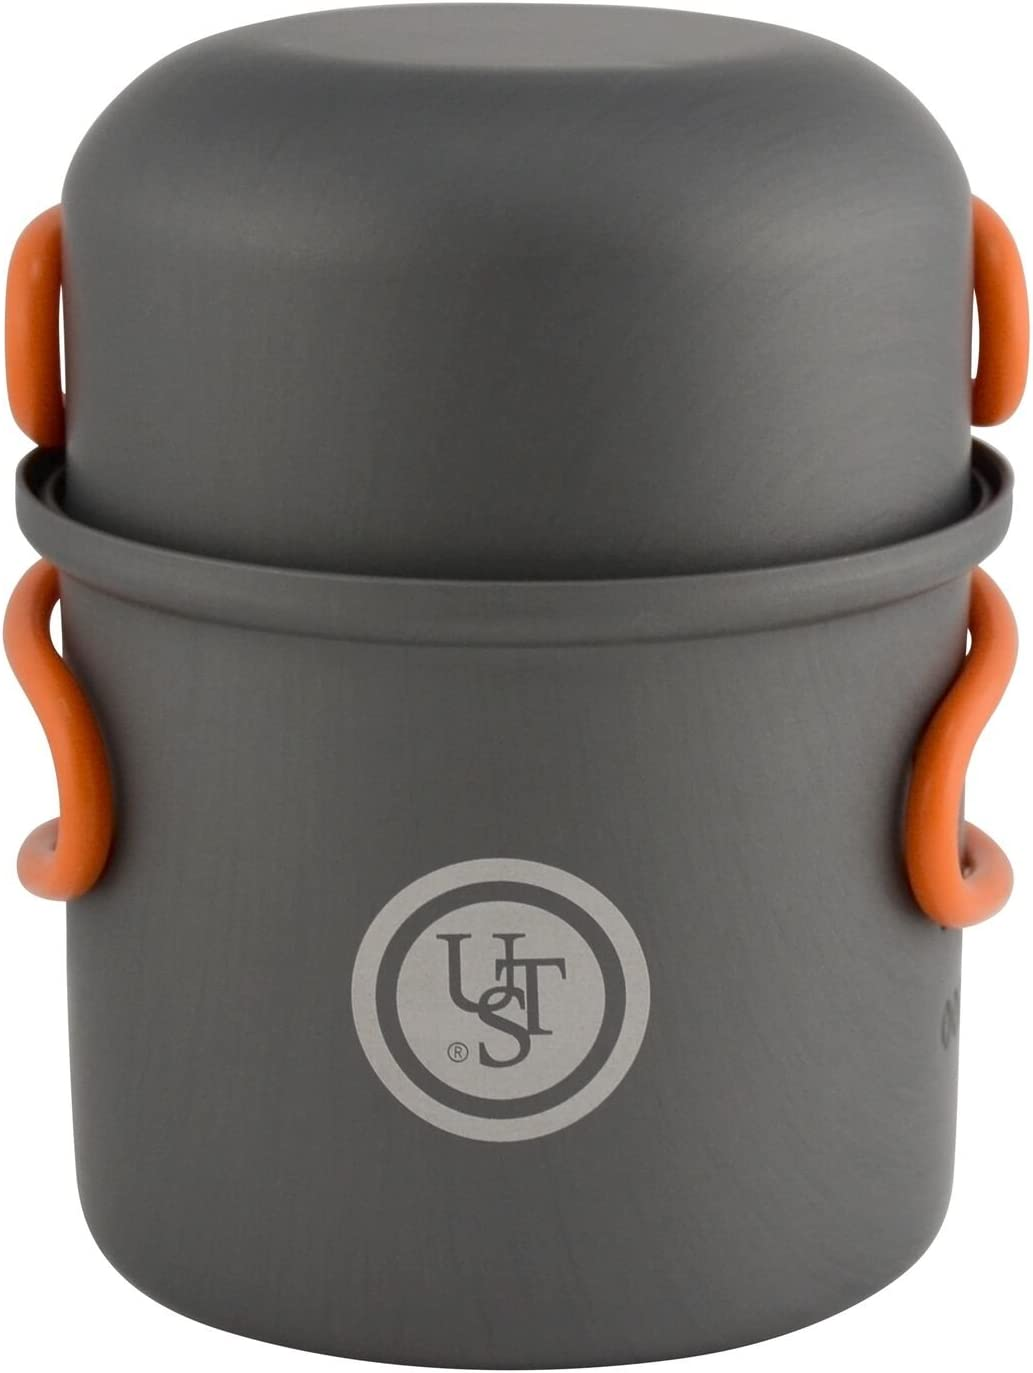 UST Solo Cook Kit with Lightweight, Compact, BPA Free, Anodized Aluminum Construction for Camping, Hiking, Emergency, Soloist and Picnics